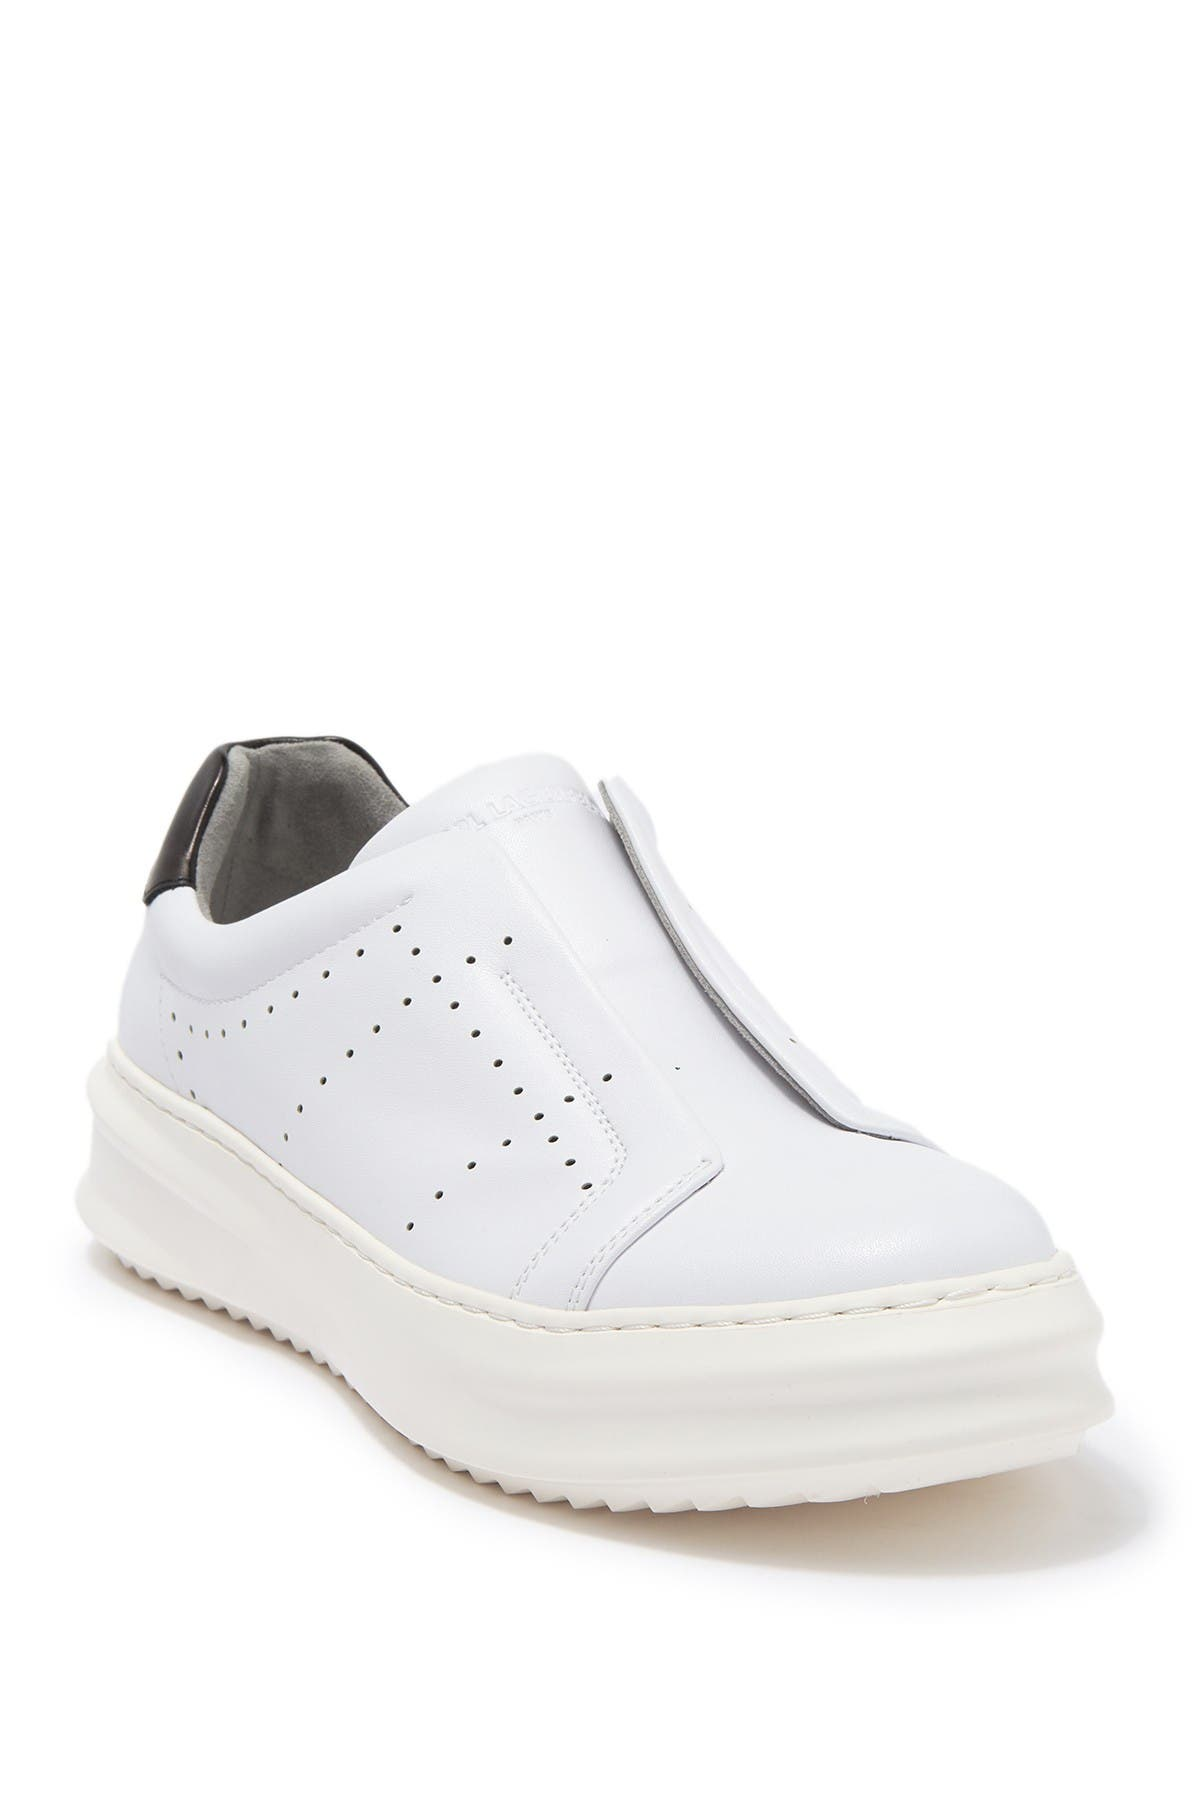 Image of Karl Lagerfeld Paris Laceless Side Perforated Sneaker